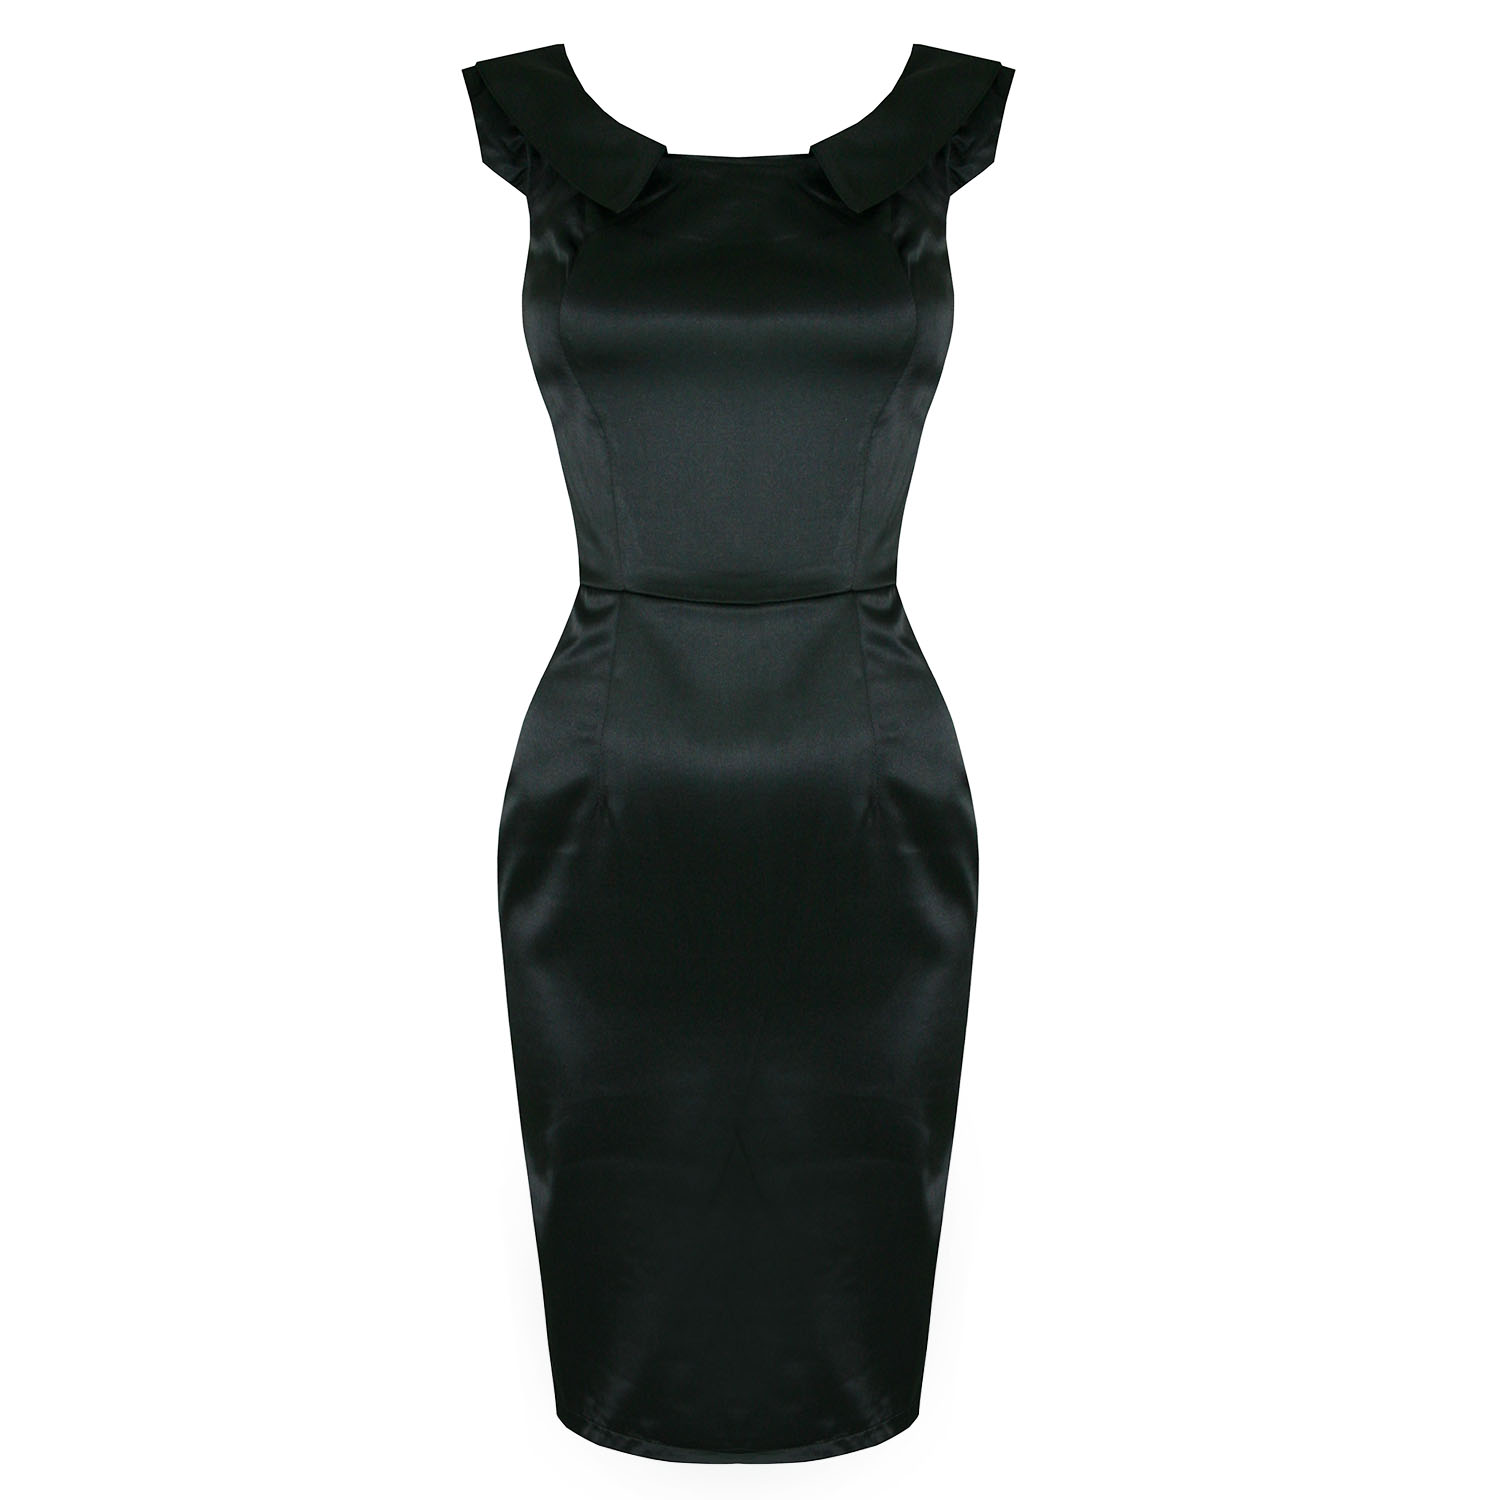 Buy low price, high quality ladies pencil dress with worldwide shipping on anthonyevans.tk